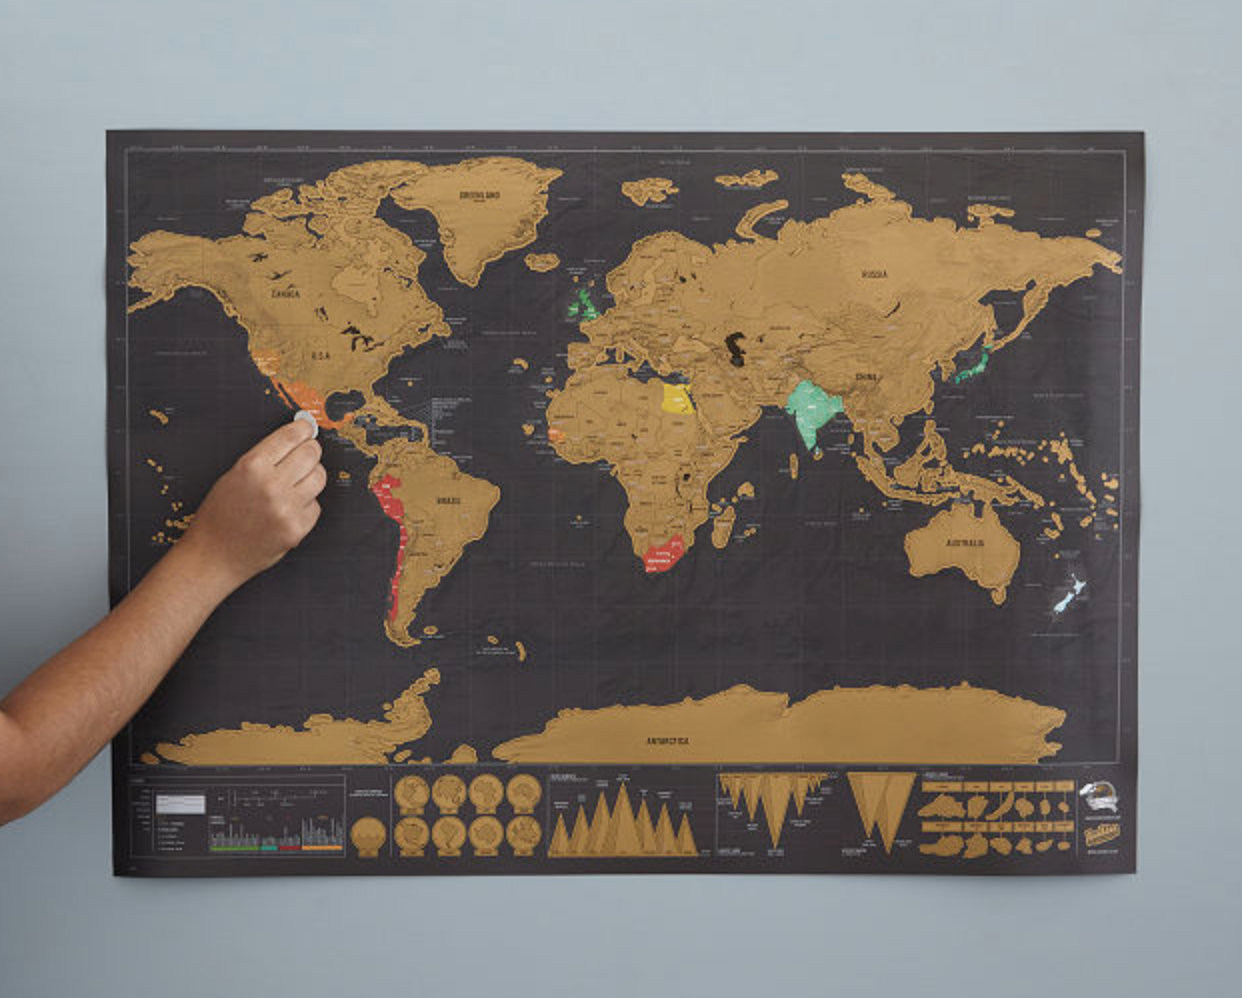 Scratch Map deluxe HomeExchange gift guide for travelers